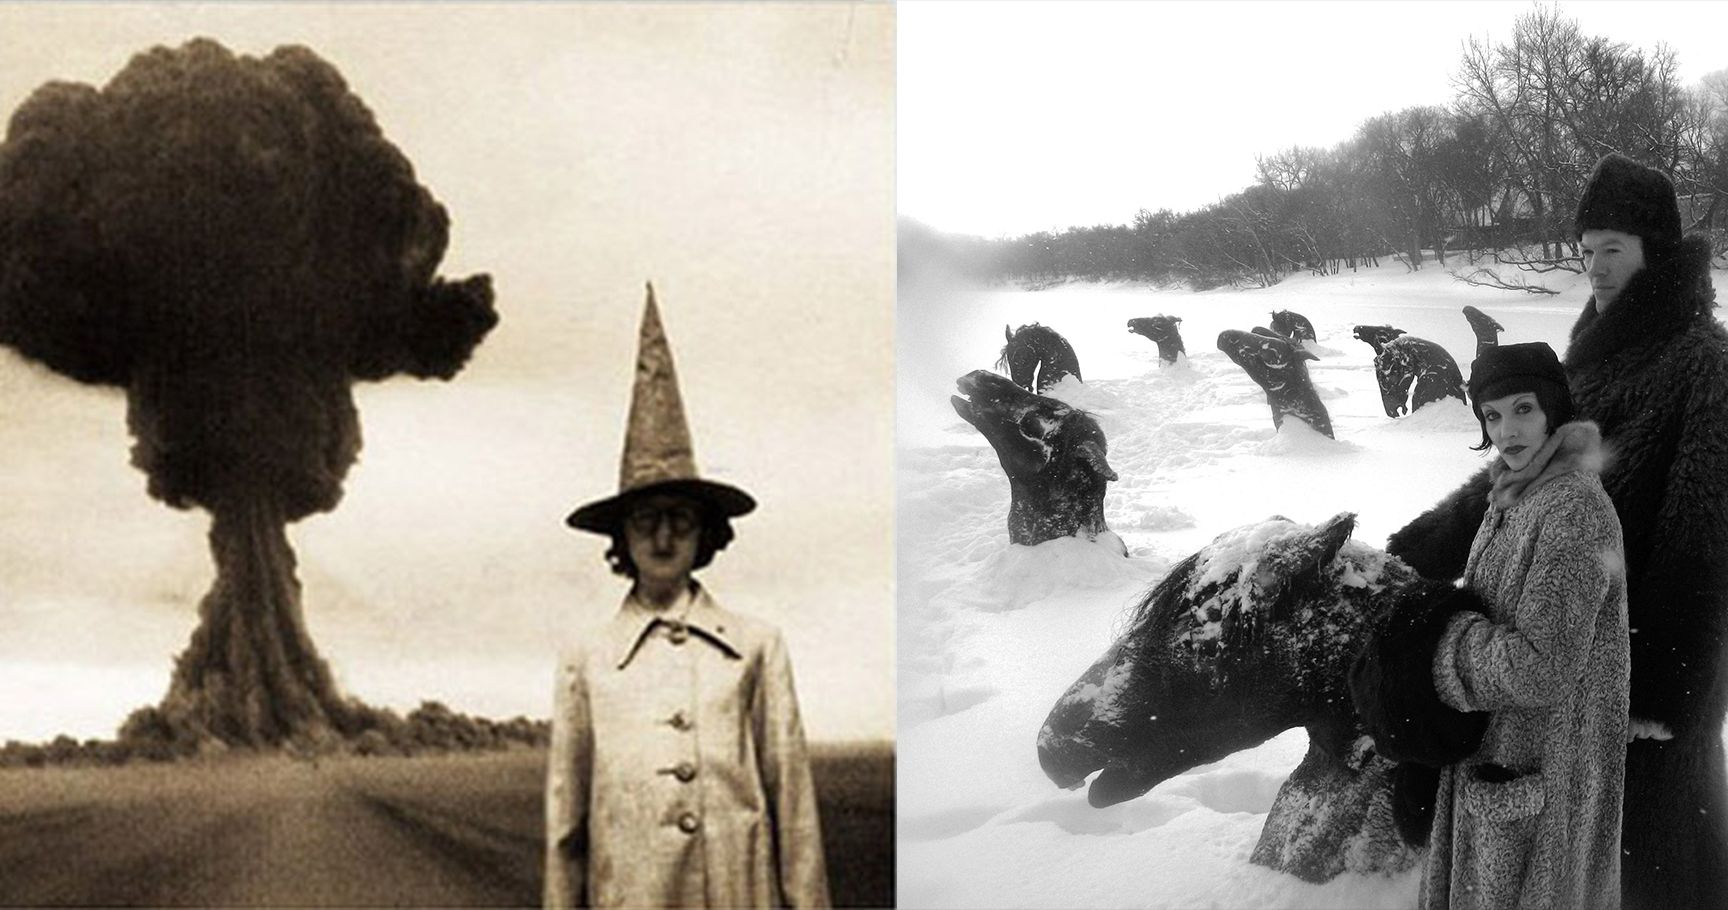 15 Disturbing Photos From The Past That Will Creep You Out